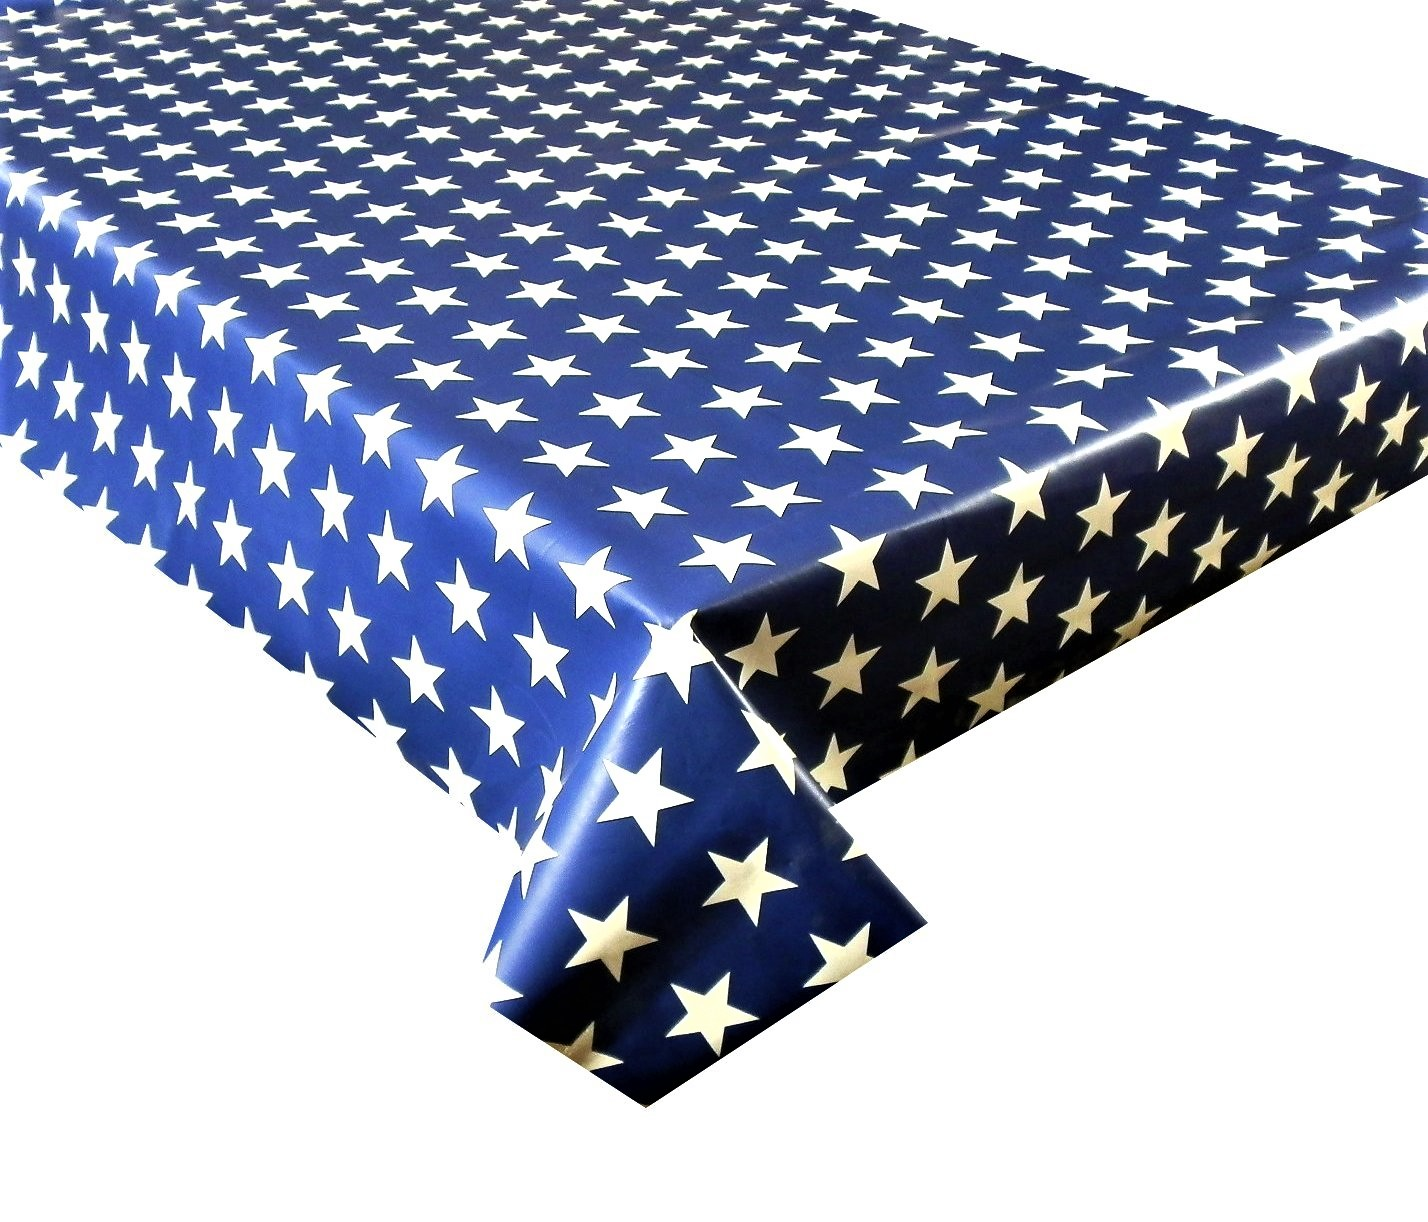 Blue Star 113 Vinyl Tablecloth Textile Backed Pvc